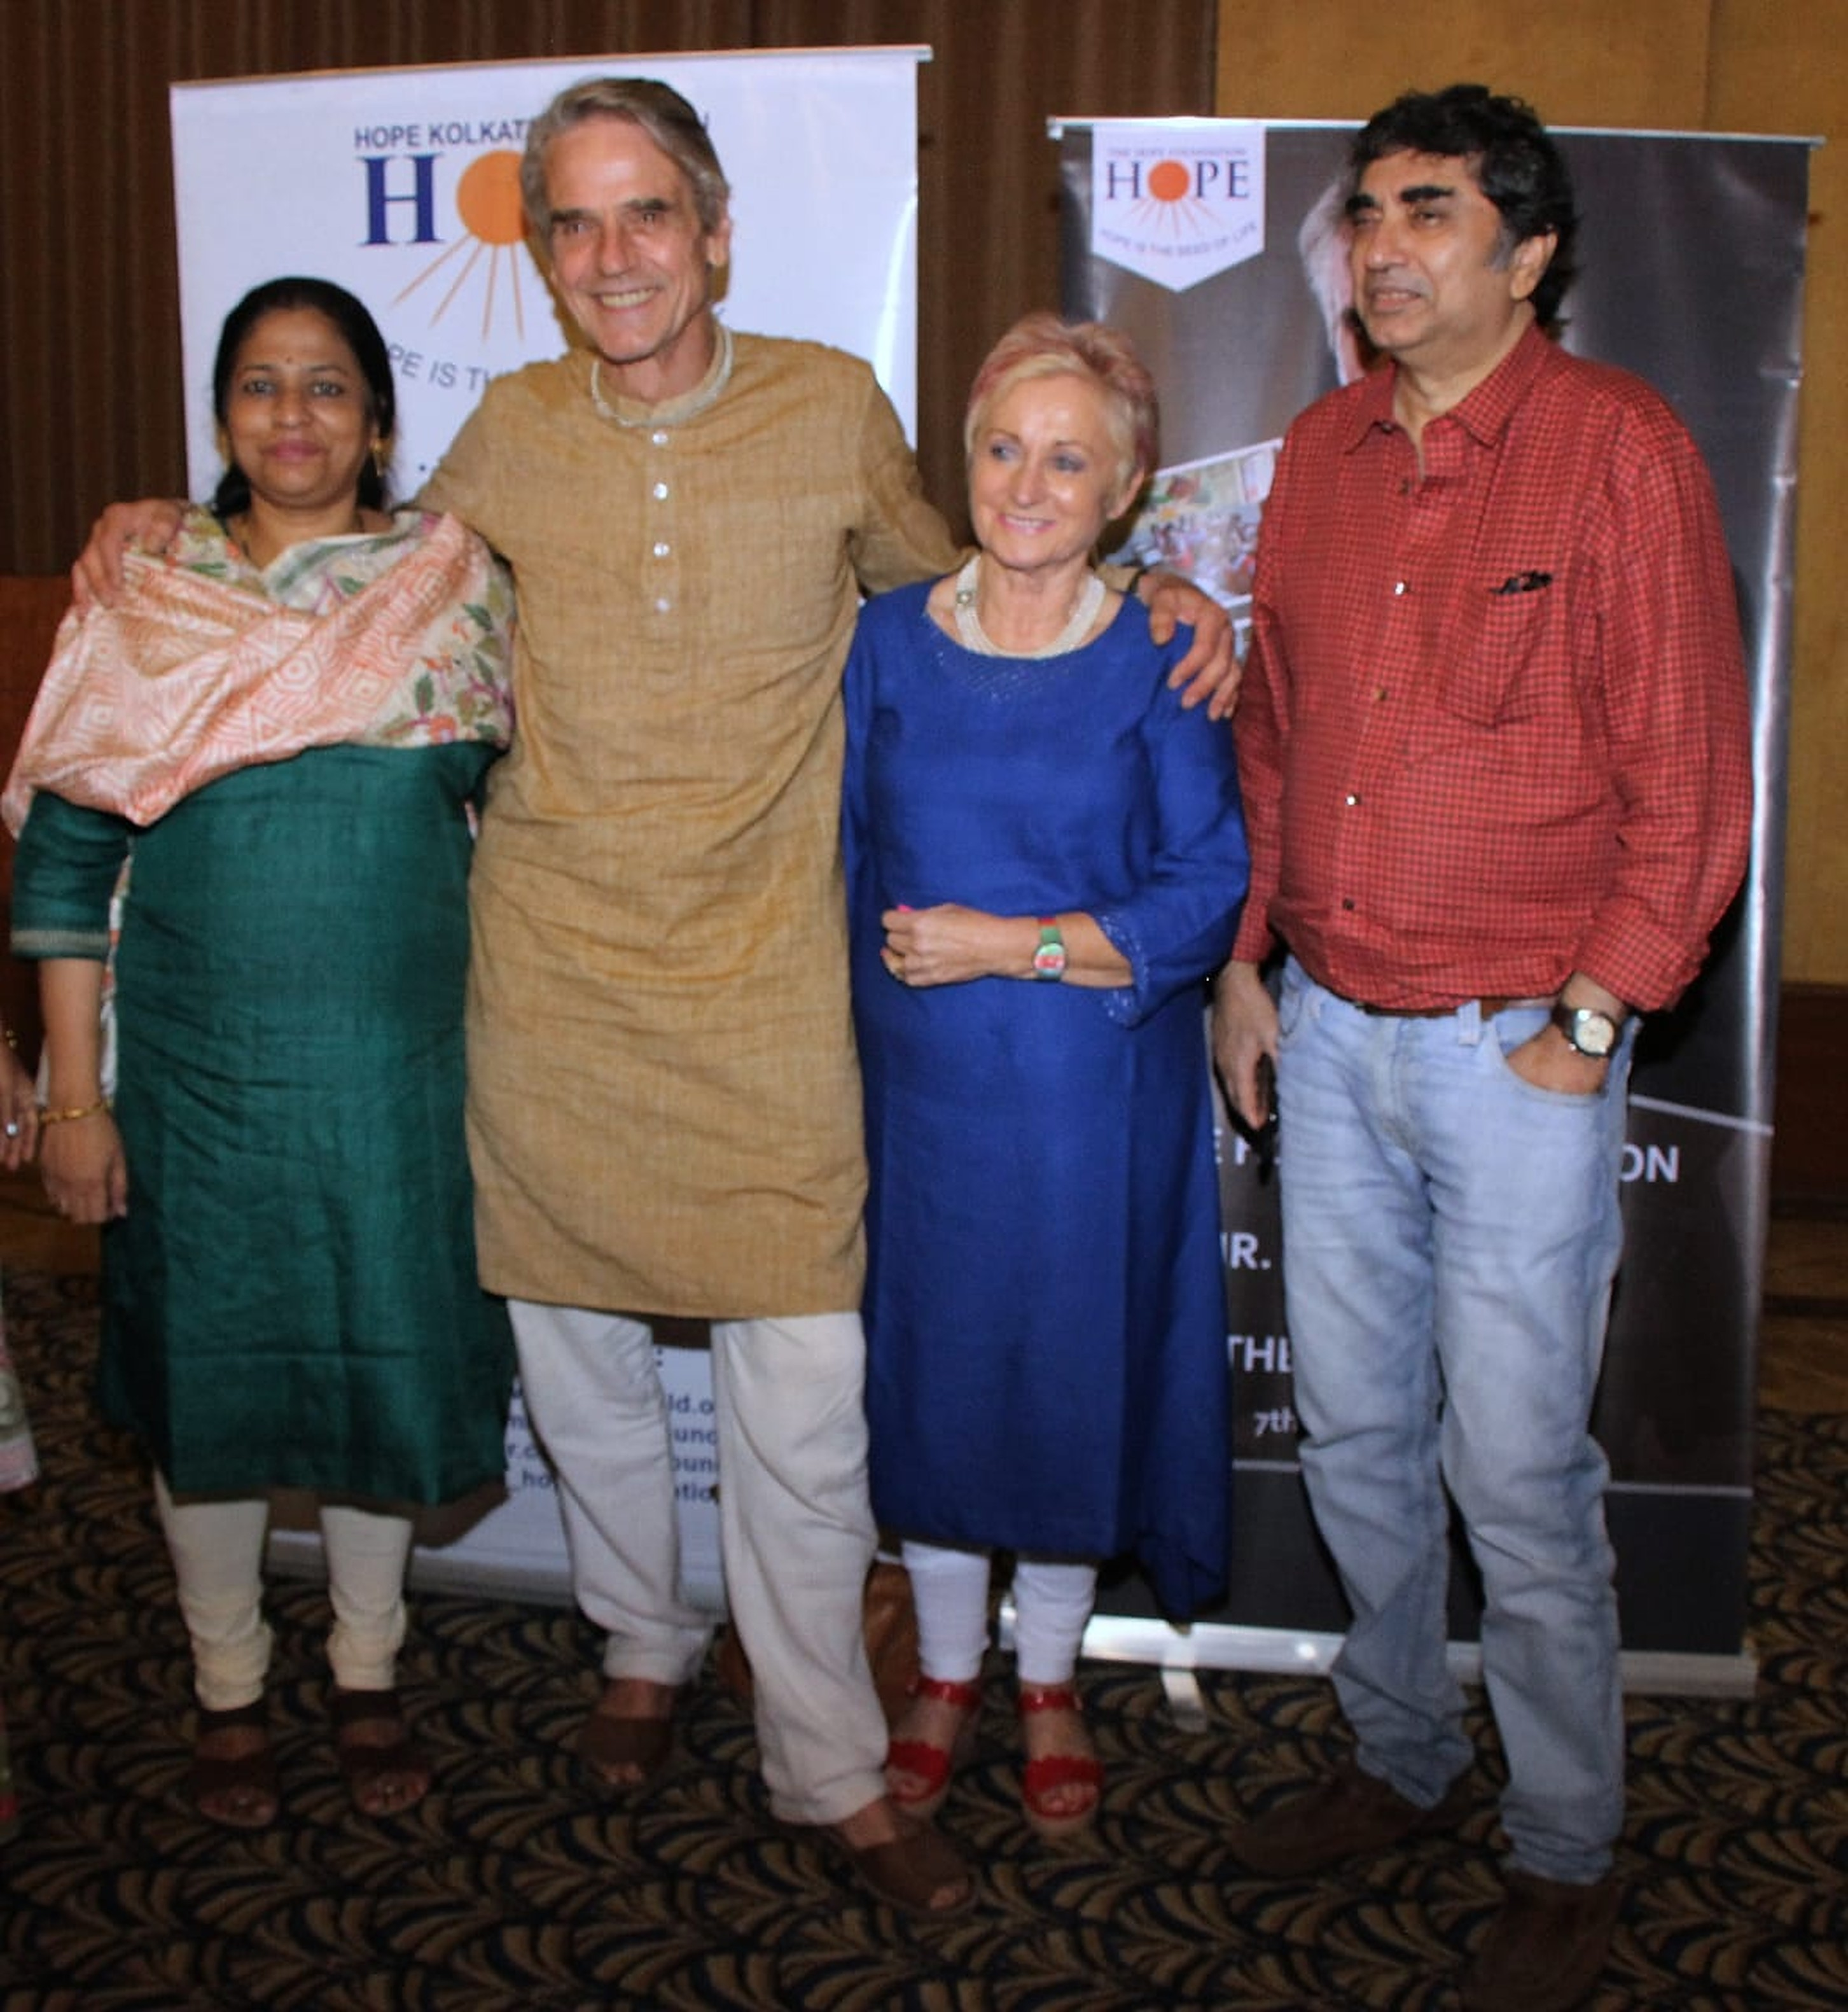 The Hope Foundation brings on Hollywood Actor Jeremy Irons as their Patron & Brand Ambassador